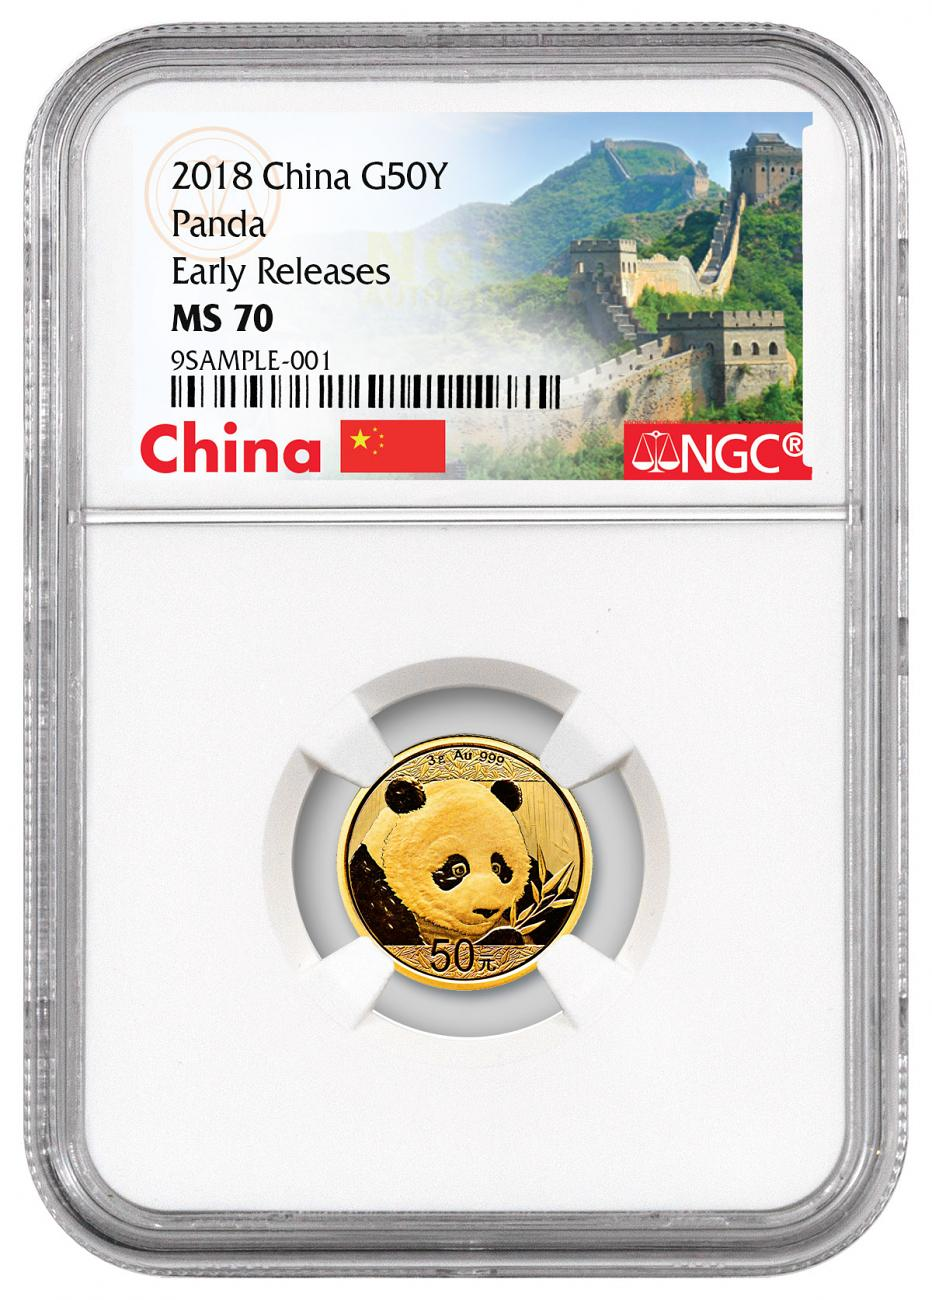 2018 China 3 g Gold Panda ¥50 Coin NGC MS70 ER Exclusive Great Wall Label